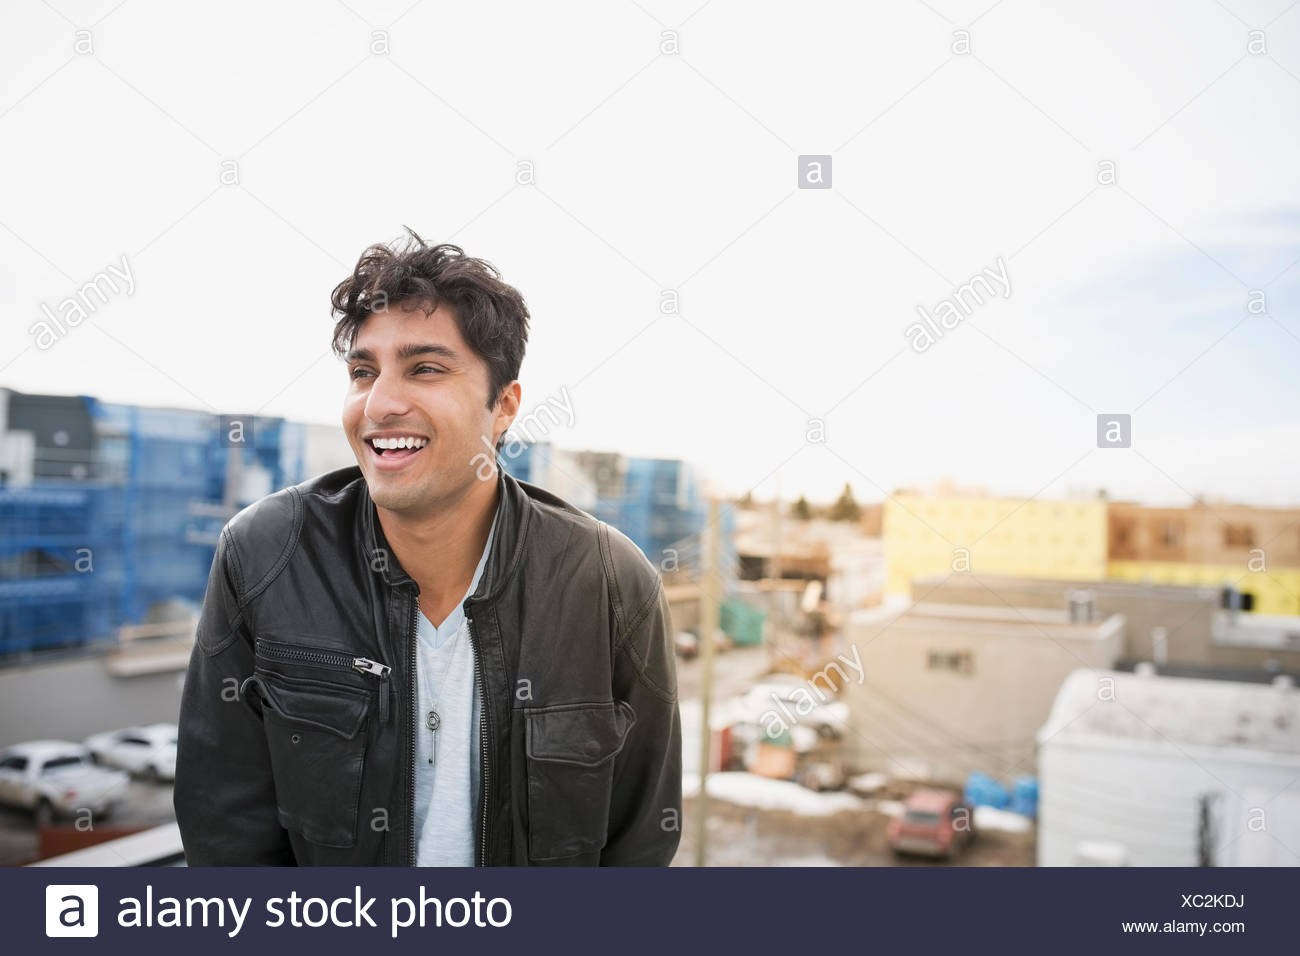 Laughing Man on urban rooftop Photo Stock